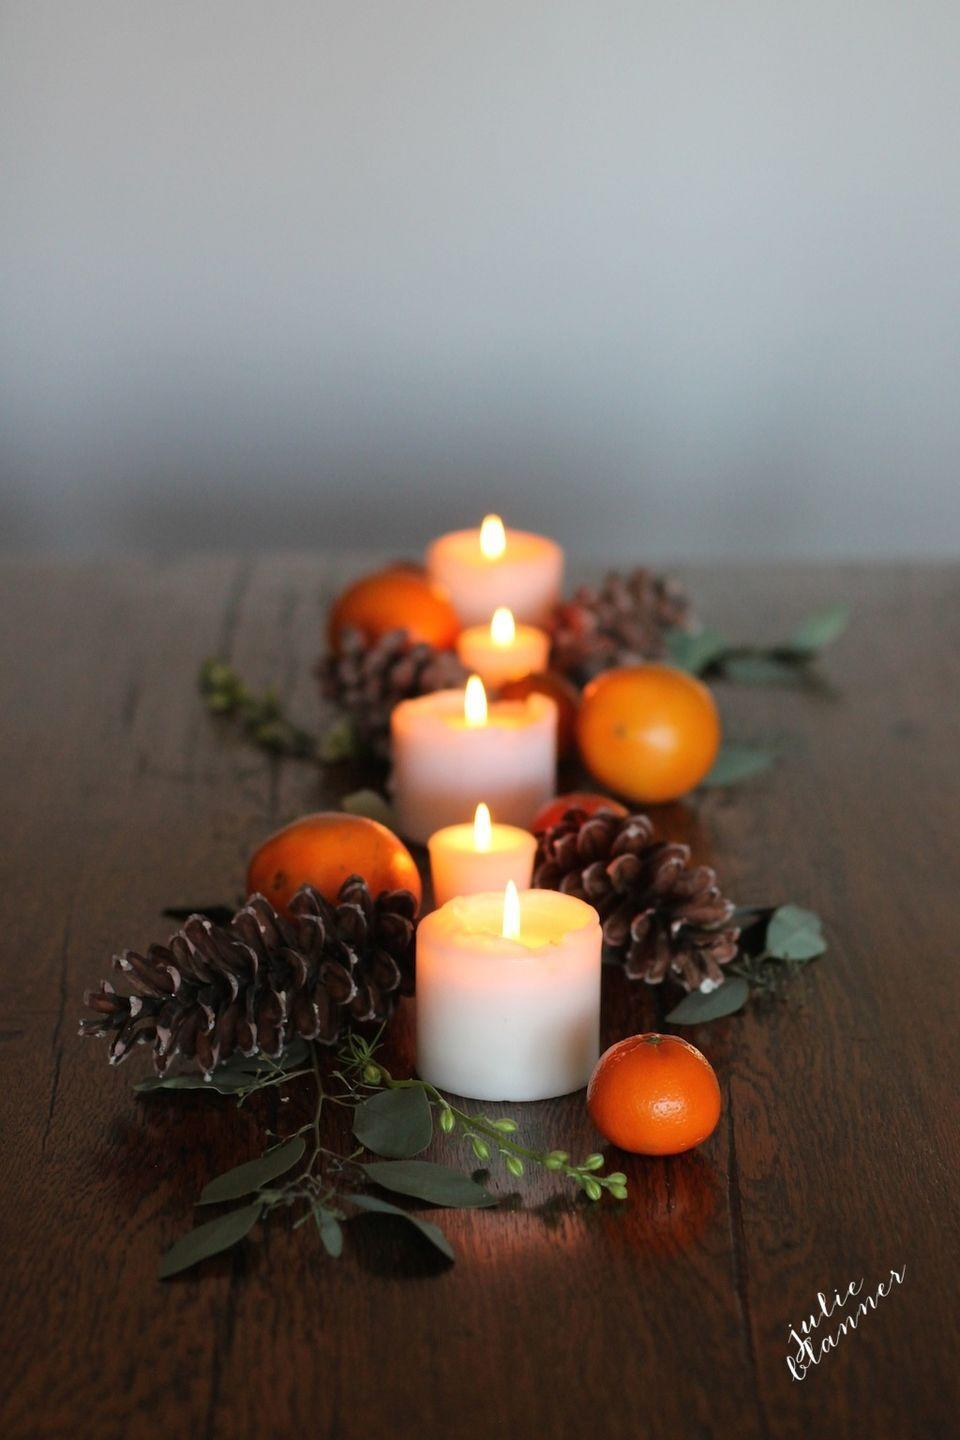 """<p>If an elaborate Thanksgiving table isn't exactly your cup of tea, take a cue from blogger Julie Blanner. In just five minutes, the blogger created a gorgeous and simple tablescape by arranging pillar candles, pinecones, clementines, and floral stems on her table.</p><p><strong>Get the tutorial at <a href=""""http://julieblanner.com/5-minute-fall-table-setting/"""" rel=""""nofollow noopener"""" target=""""_blank"""" data-ylk=""""slk:Coordinately Yours"""" class=""""link rapid-noclick-resp"""">Coordinately Yours</a>.</strong></p><p><strong><a class=""""link rapid-noclick-resp"""" href=""""https://www.amazon.com/SuperMoss-24511-Black-Spruce-8-Ounce/dp/B00K80EWGA/?tag=syn-yahoo-20&ascsubtag=%5Bartid%7C10050.g.2130%5Bsrc%7Cyahoo-us"""" rel=""""nofollow noopener"""" target=""""_blank"""" data-ylk=""""slk:SHOP PINECONES""""><strong>SHOP PINECONES</strong></a><br></strong></p>"""